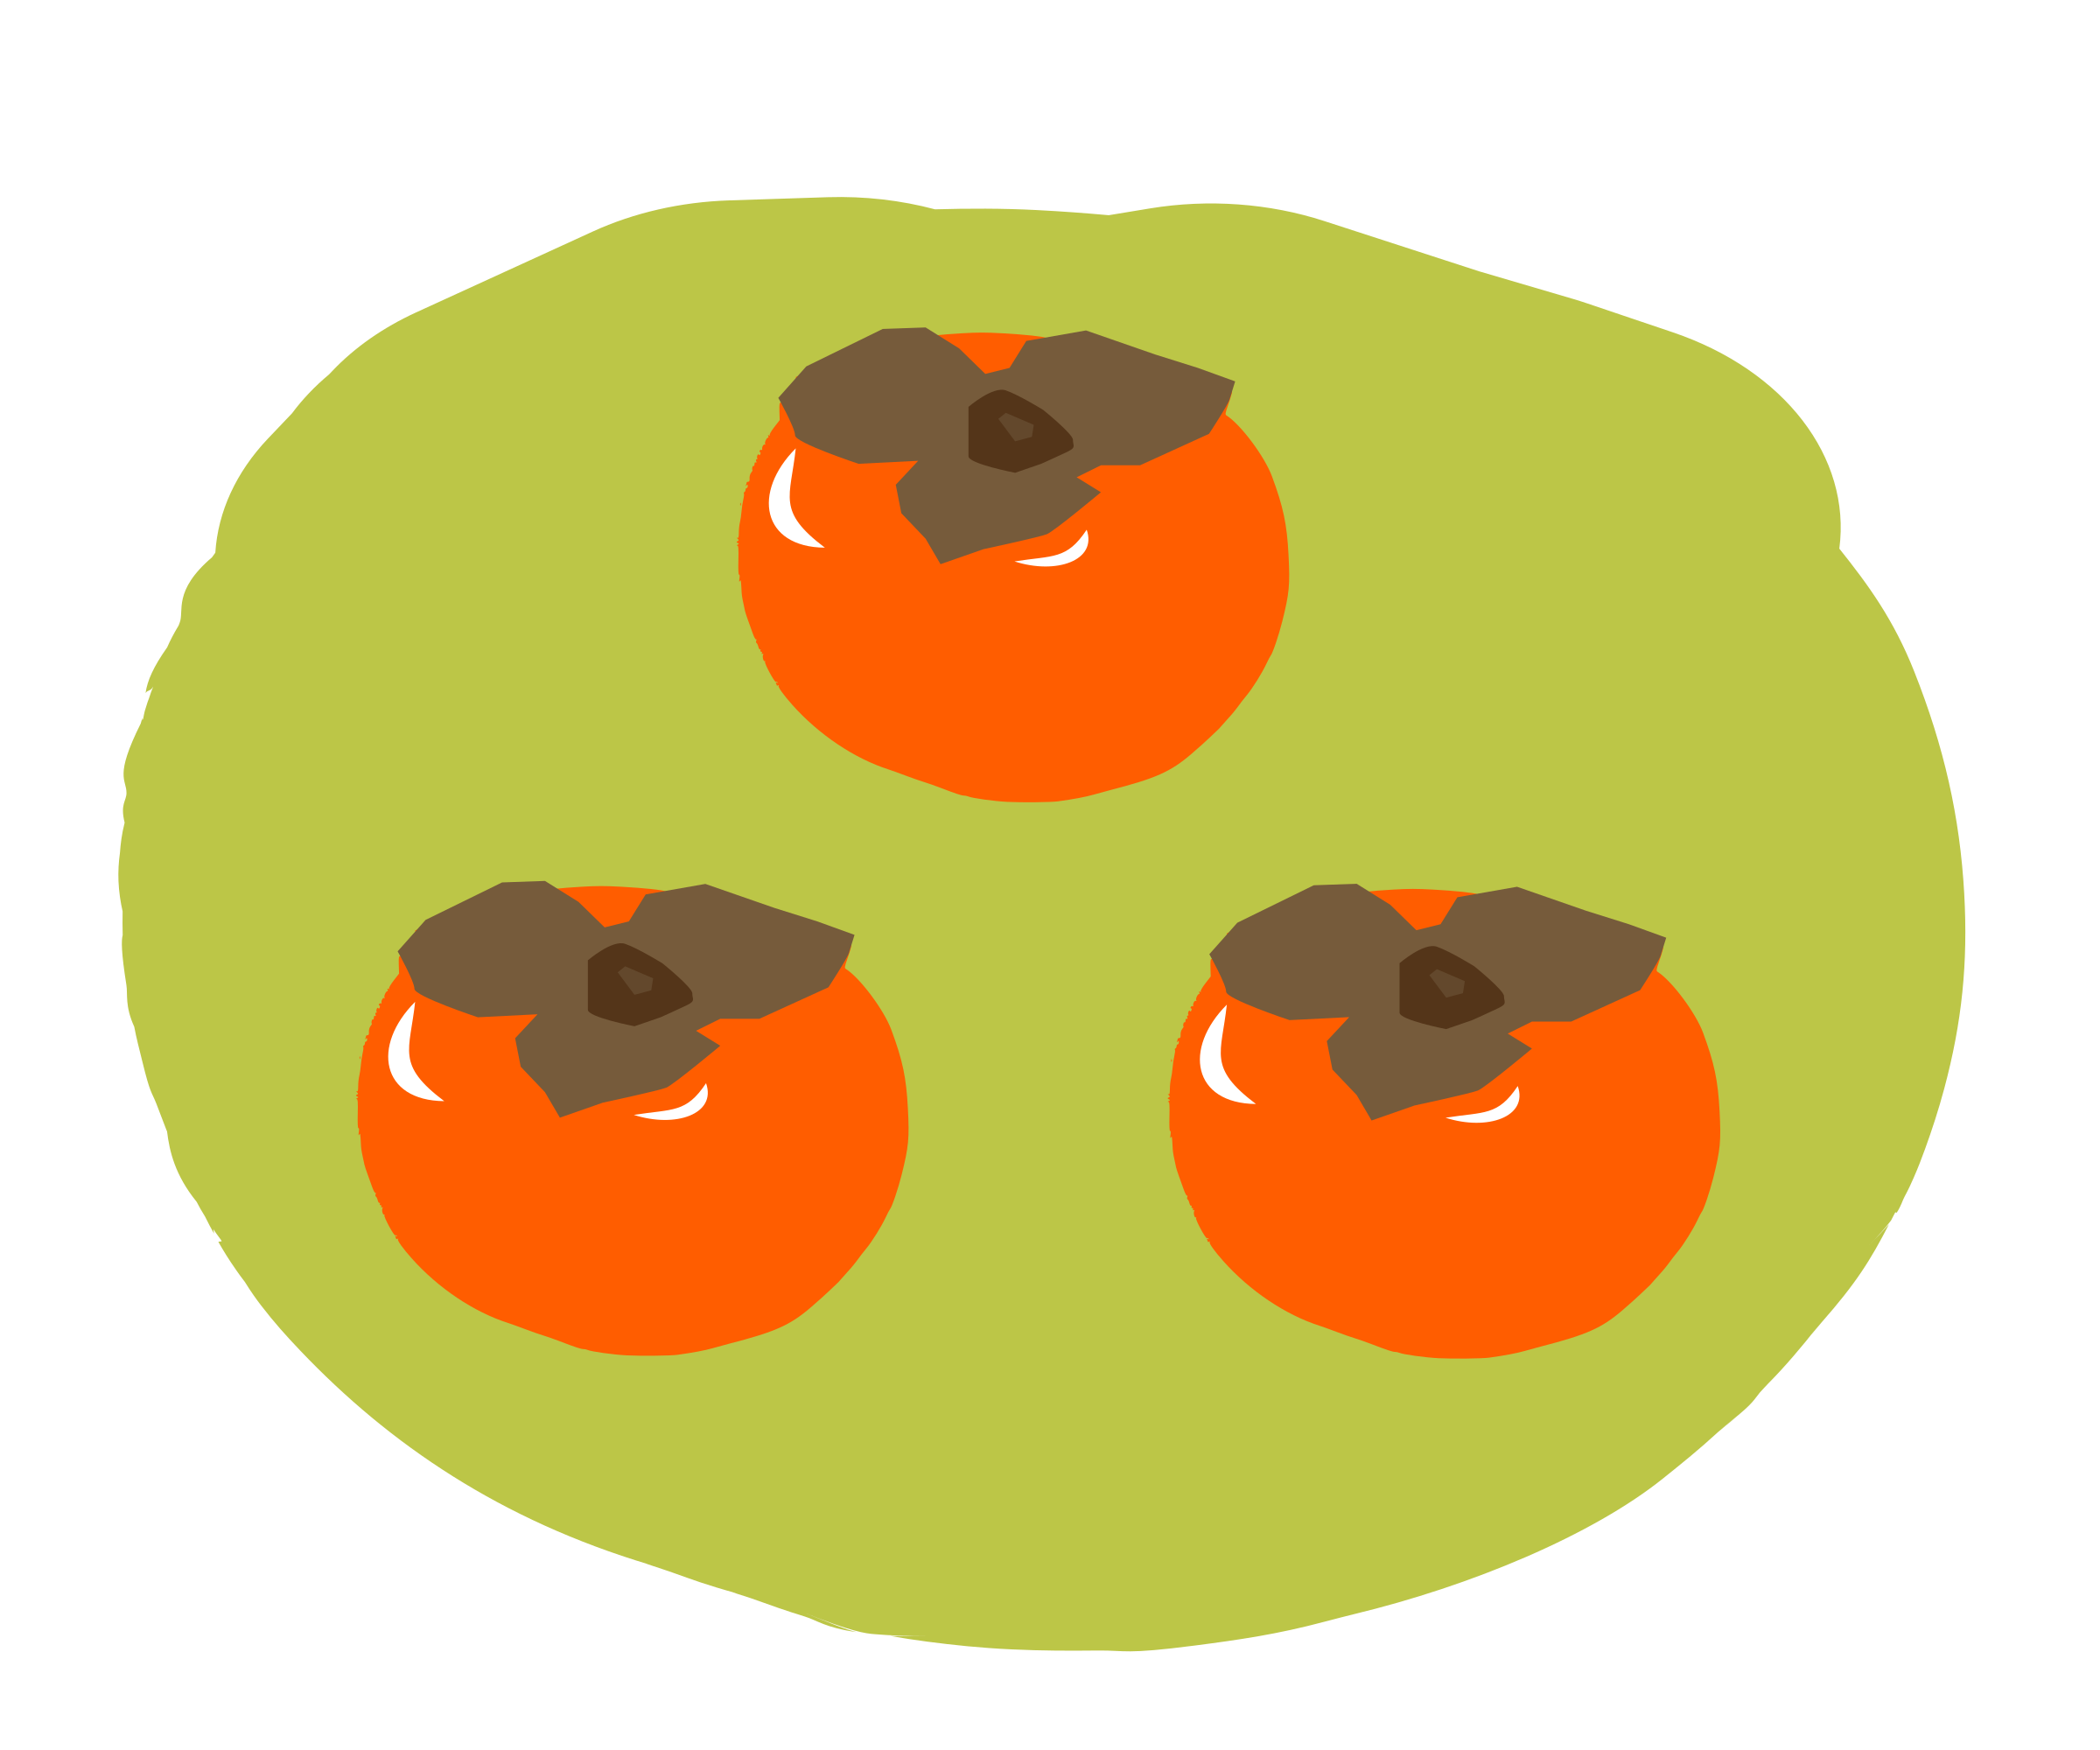 free png Persimmon Clipart images transparent